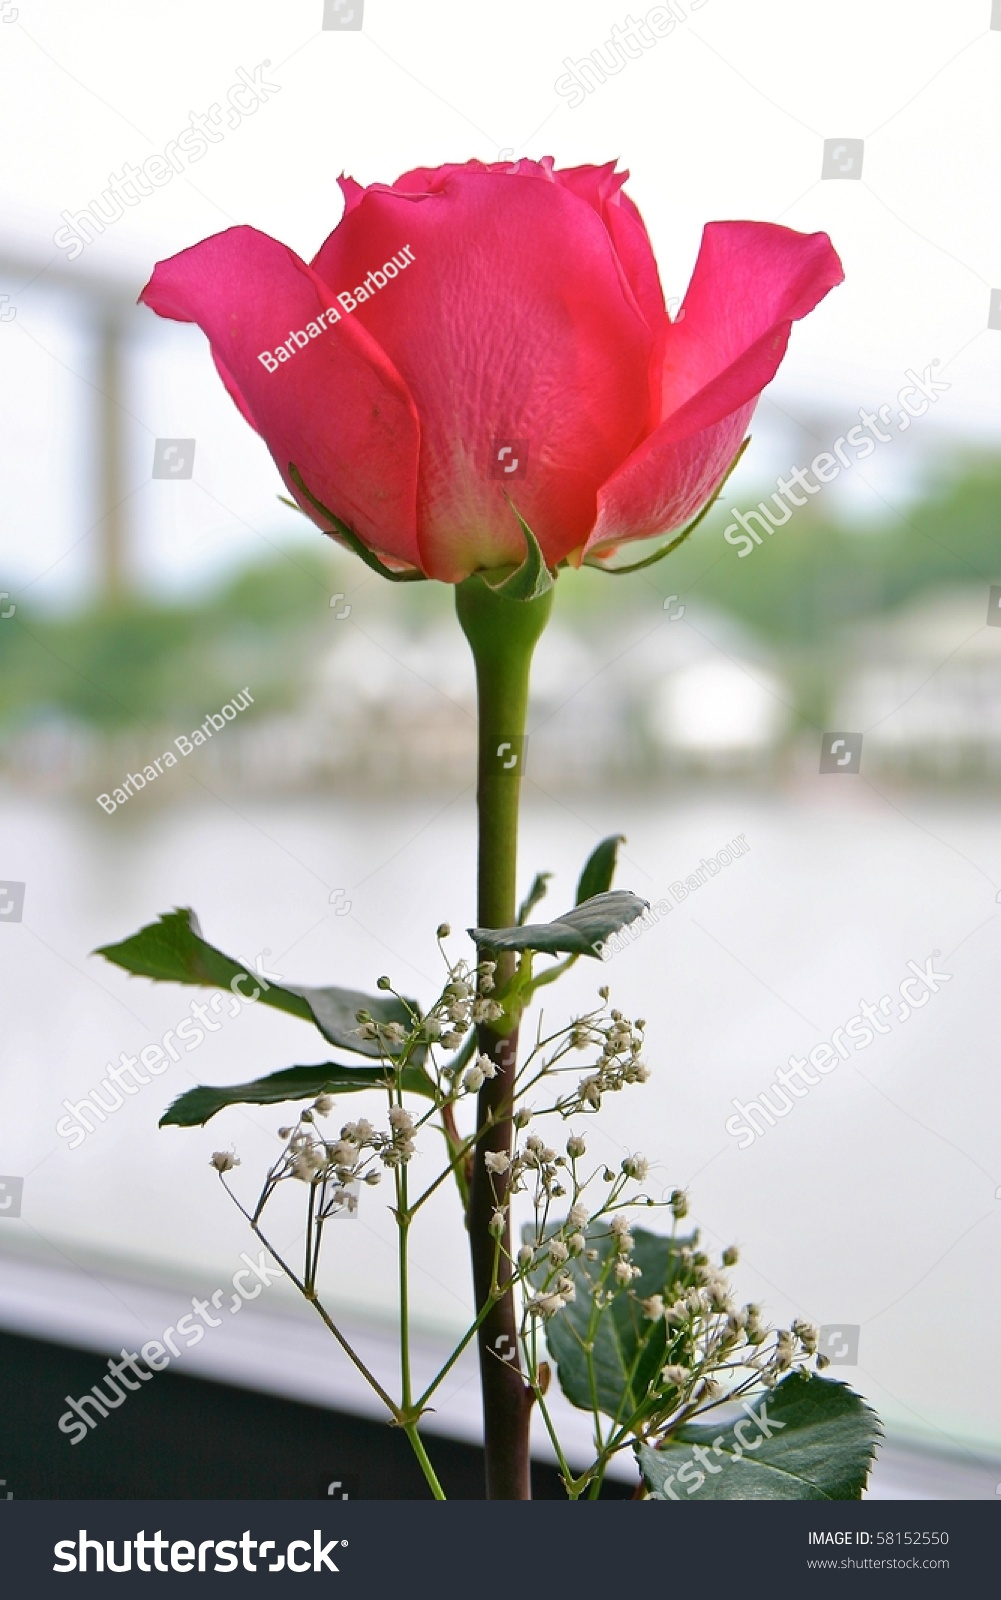 Single rose with babies breath as a table centerpiece